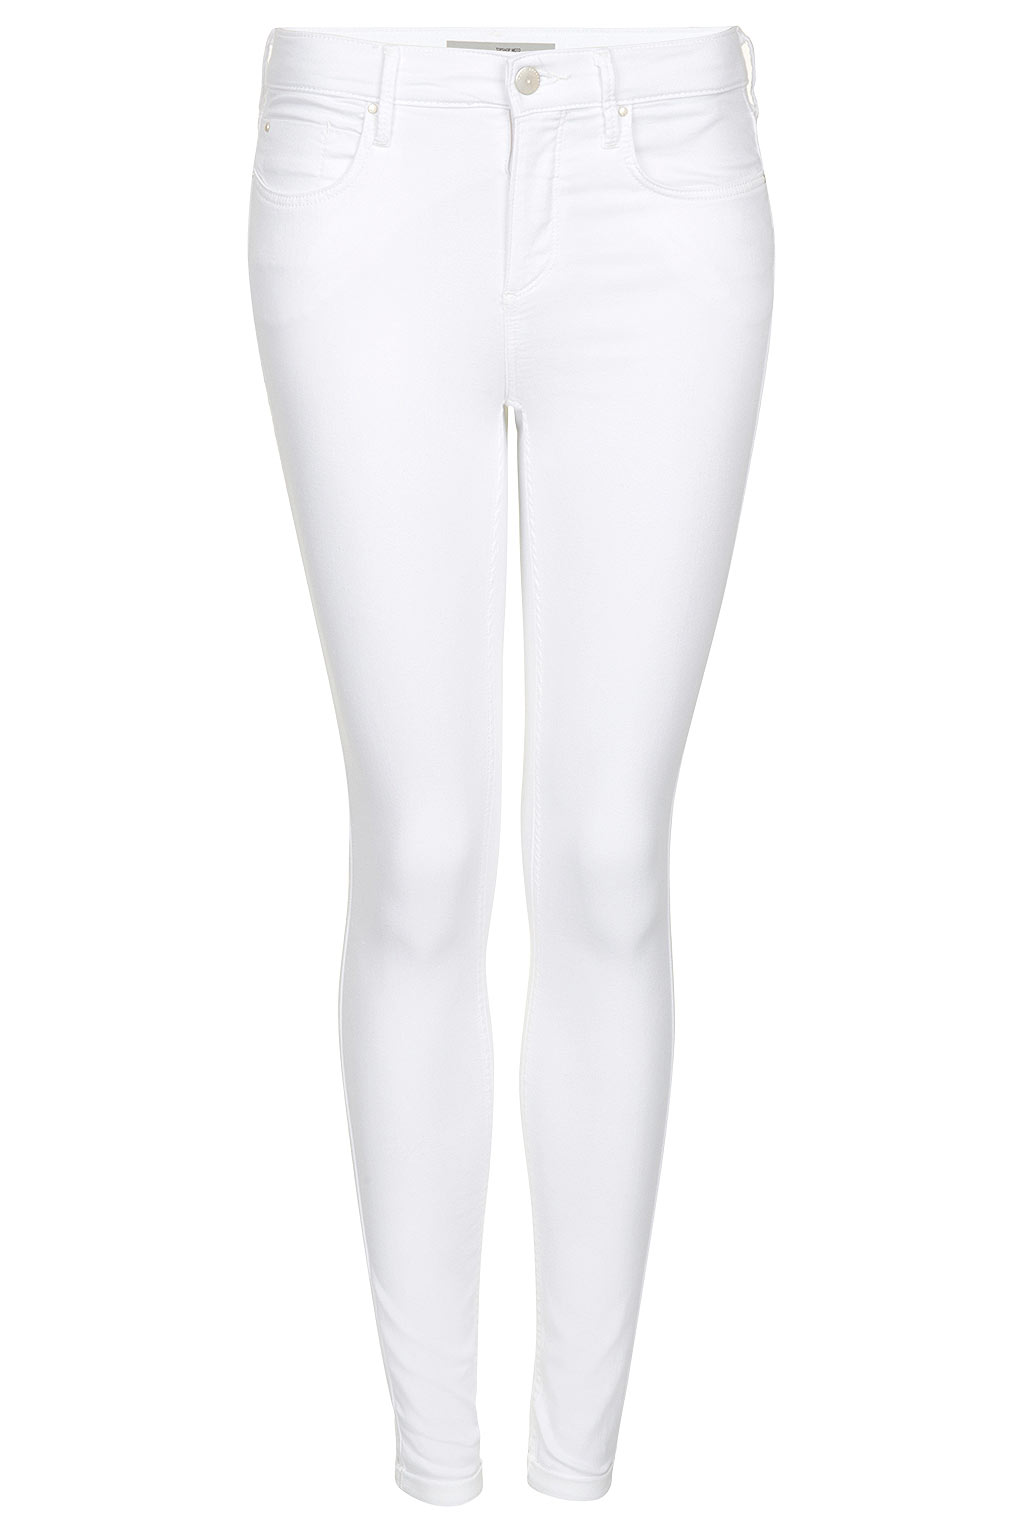 Topshop Leigh Jeans in White | Lyst